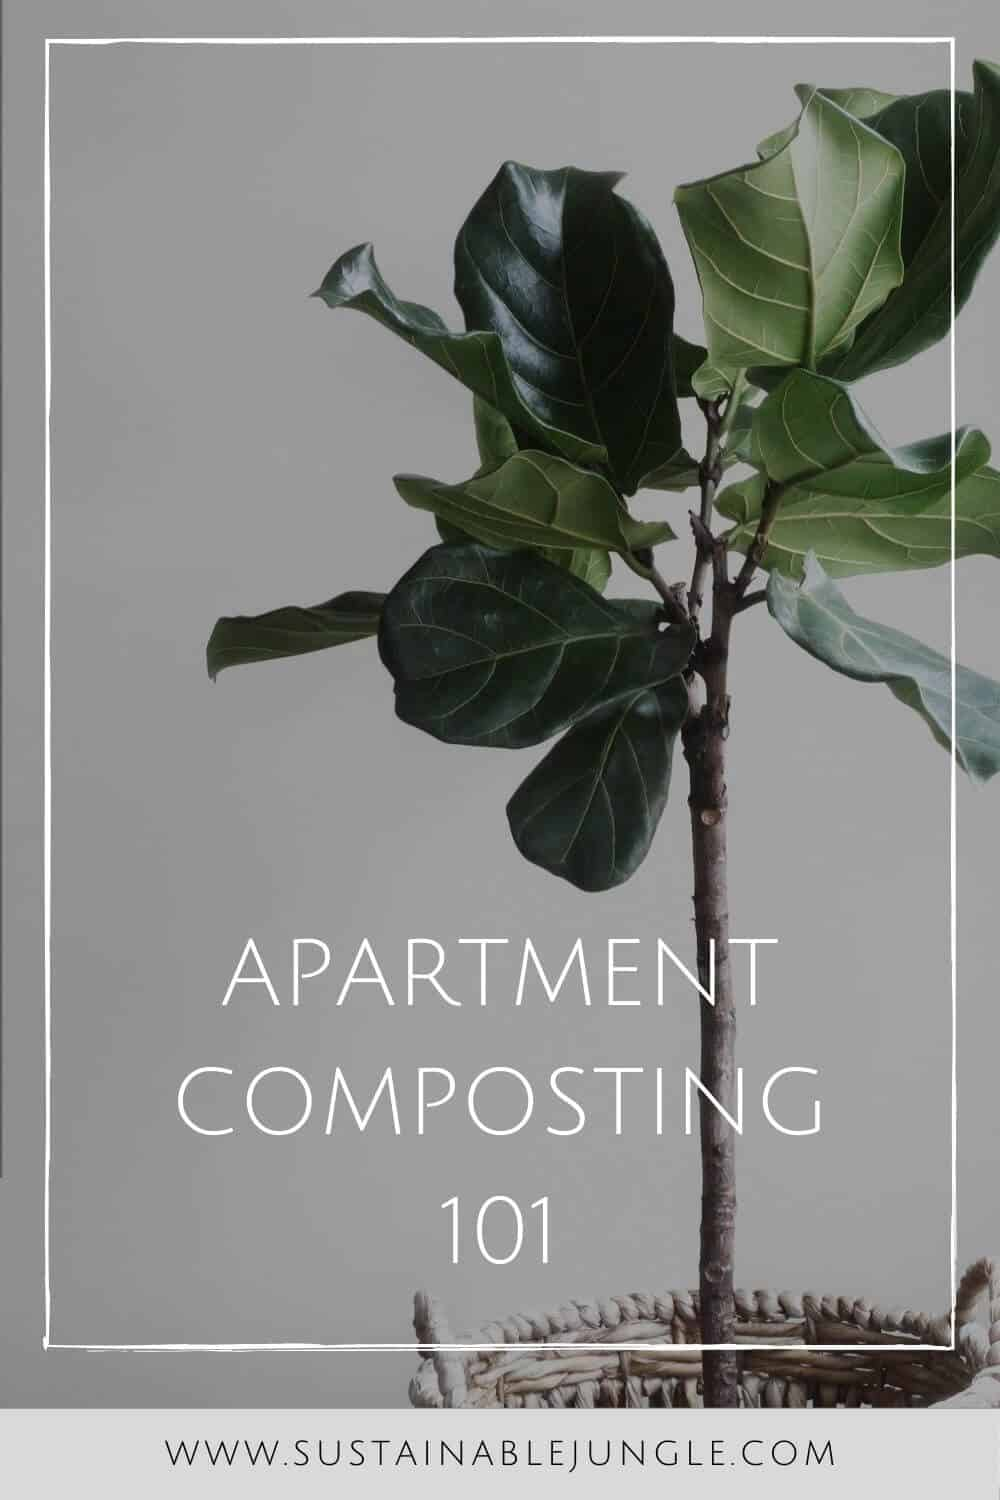 Apartment composting: Because composting has so many benefits, we've created a series of steps and options to help those living in tight quarters still dispose of this waste responsibly. Photo by Lauren Mancke on Unsplash #apartmentcomposting #sustainablejungle